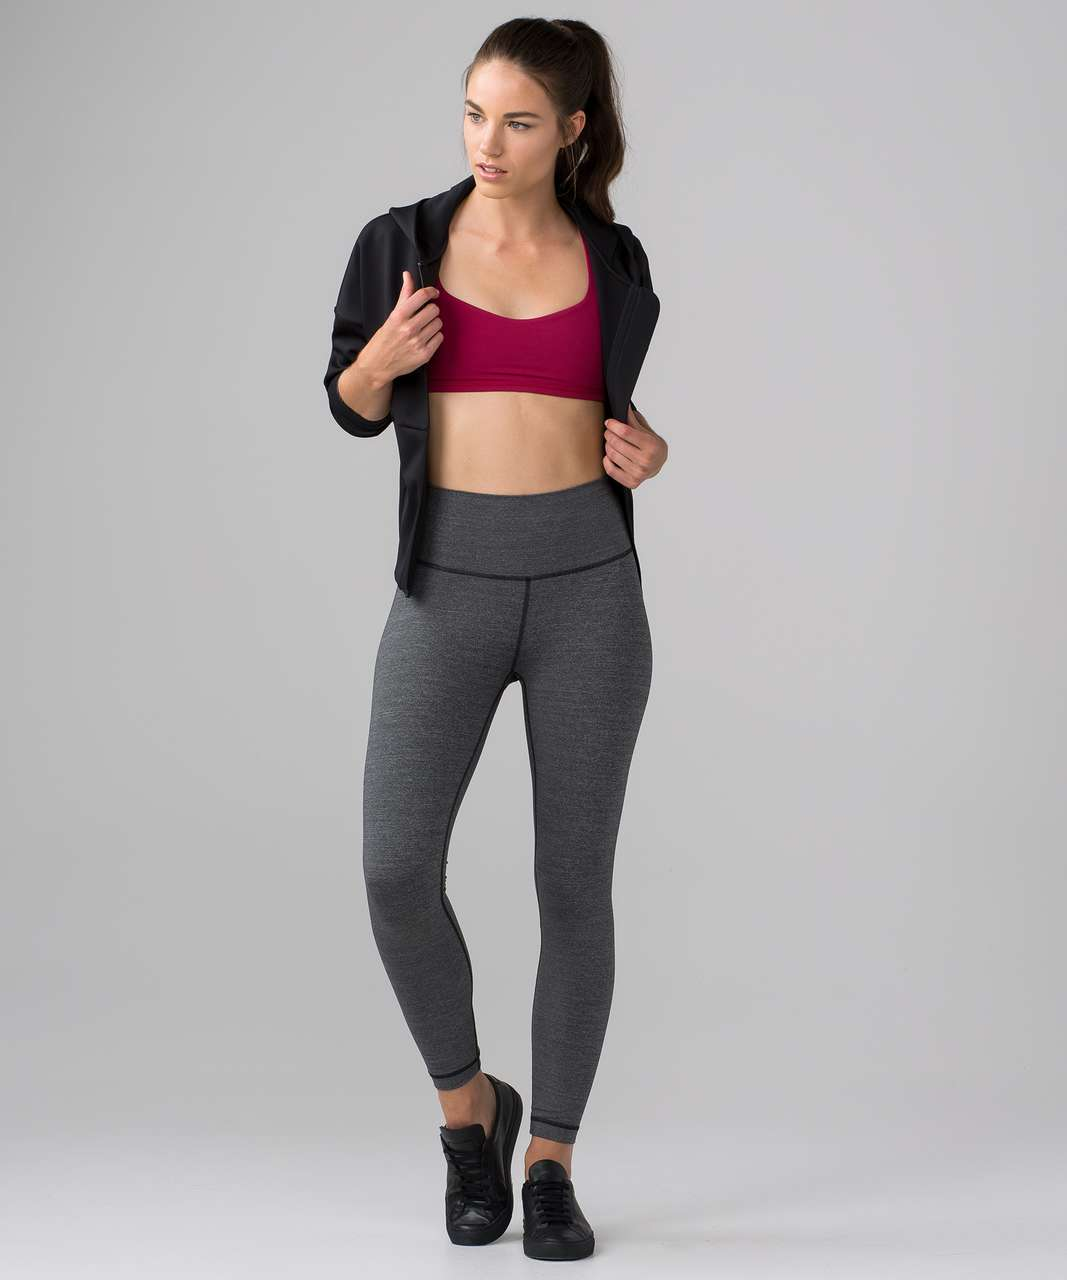 Lululemon Free To Be Bra - Berry Rumble